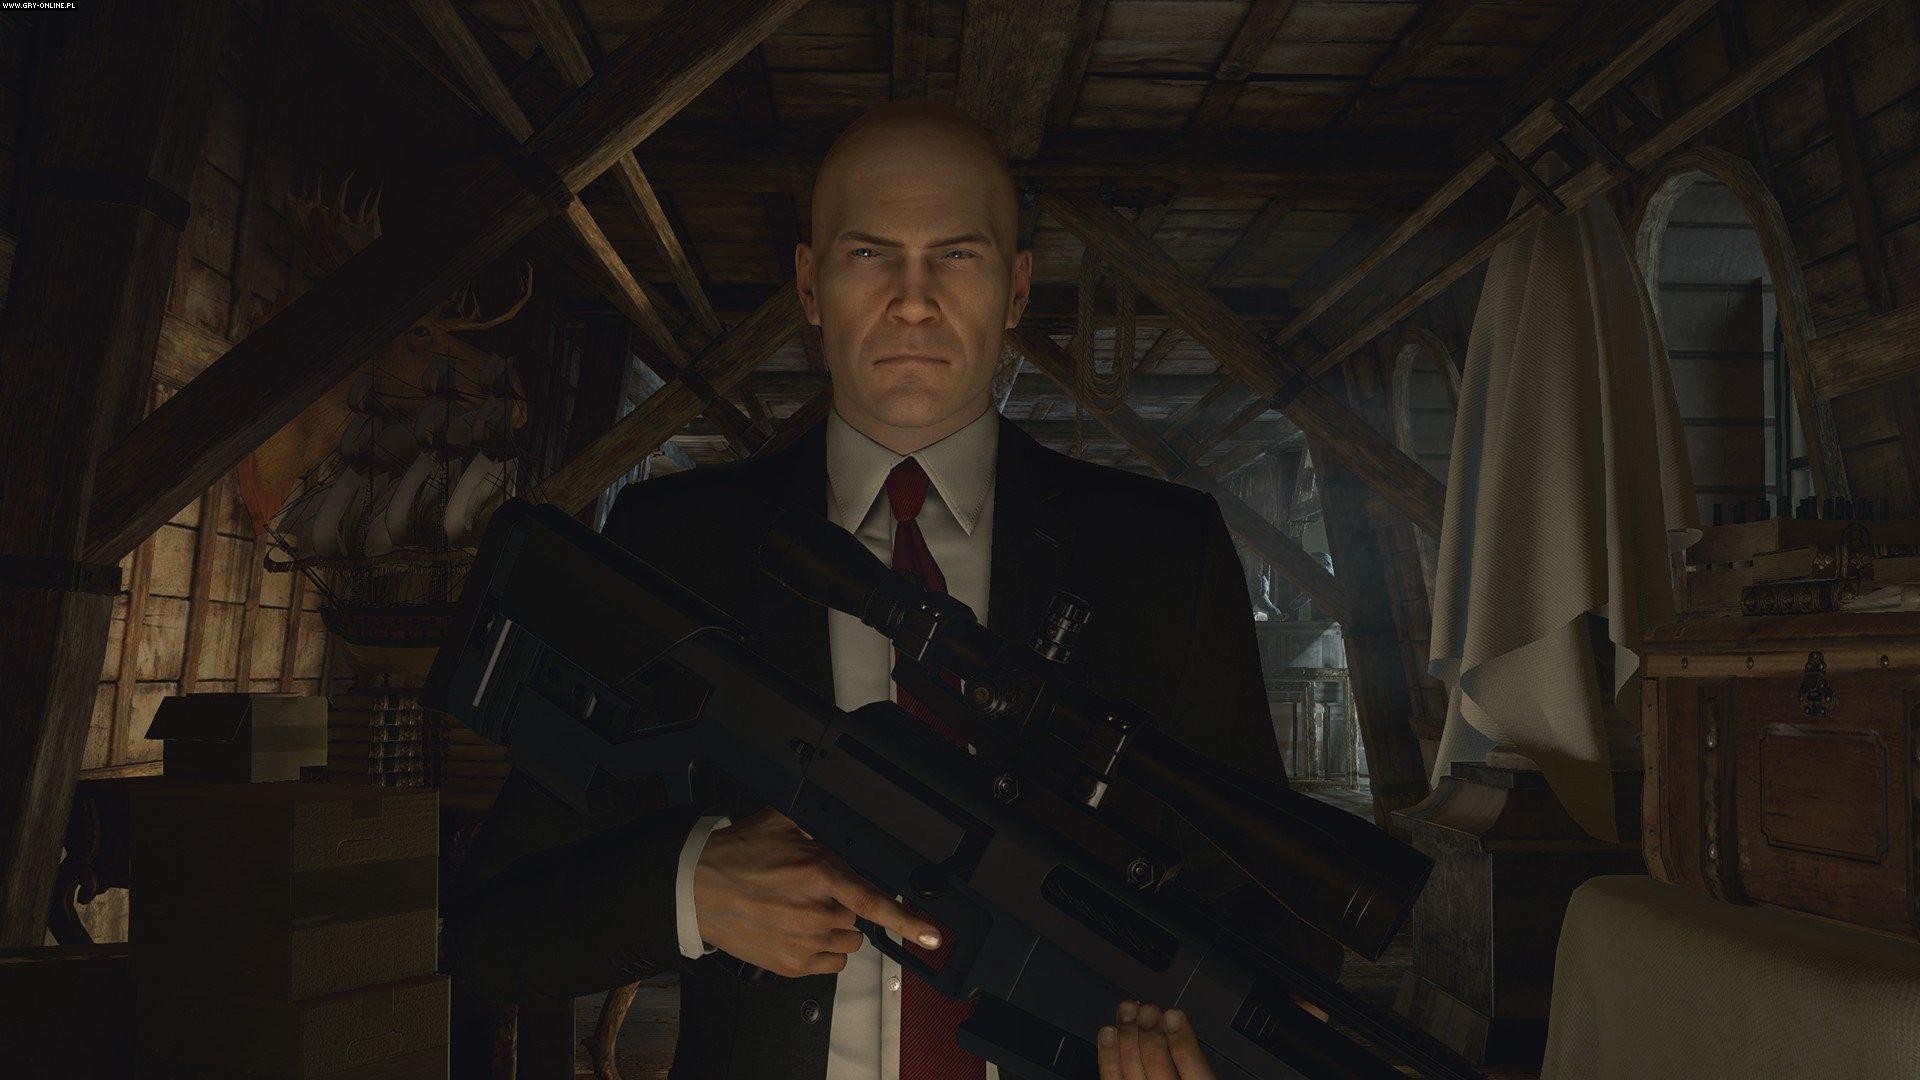 Hitman PC, PS4, XONE Games Image 17/21, Io-Interactive, Square-Enix / Eidos